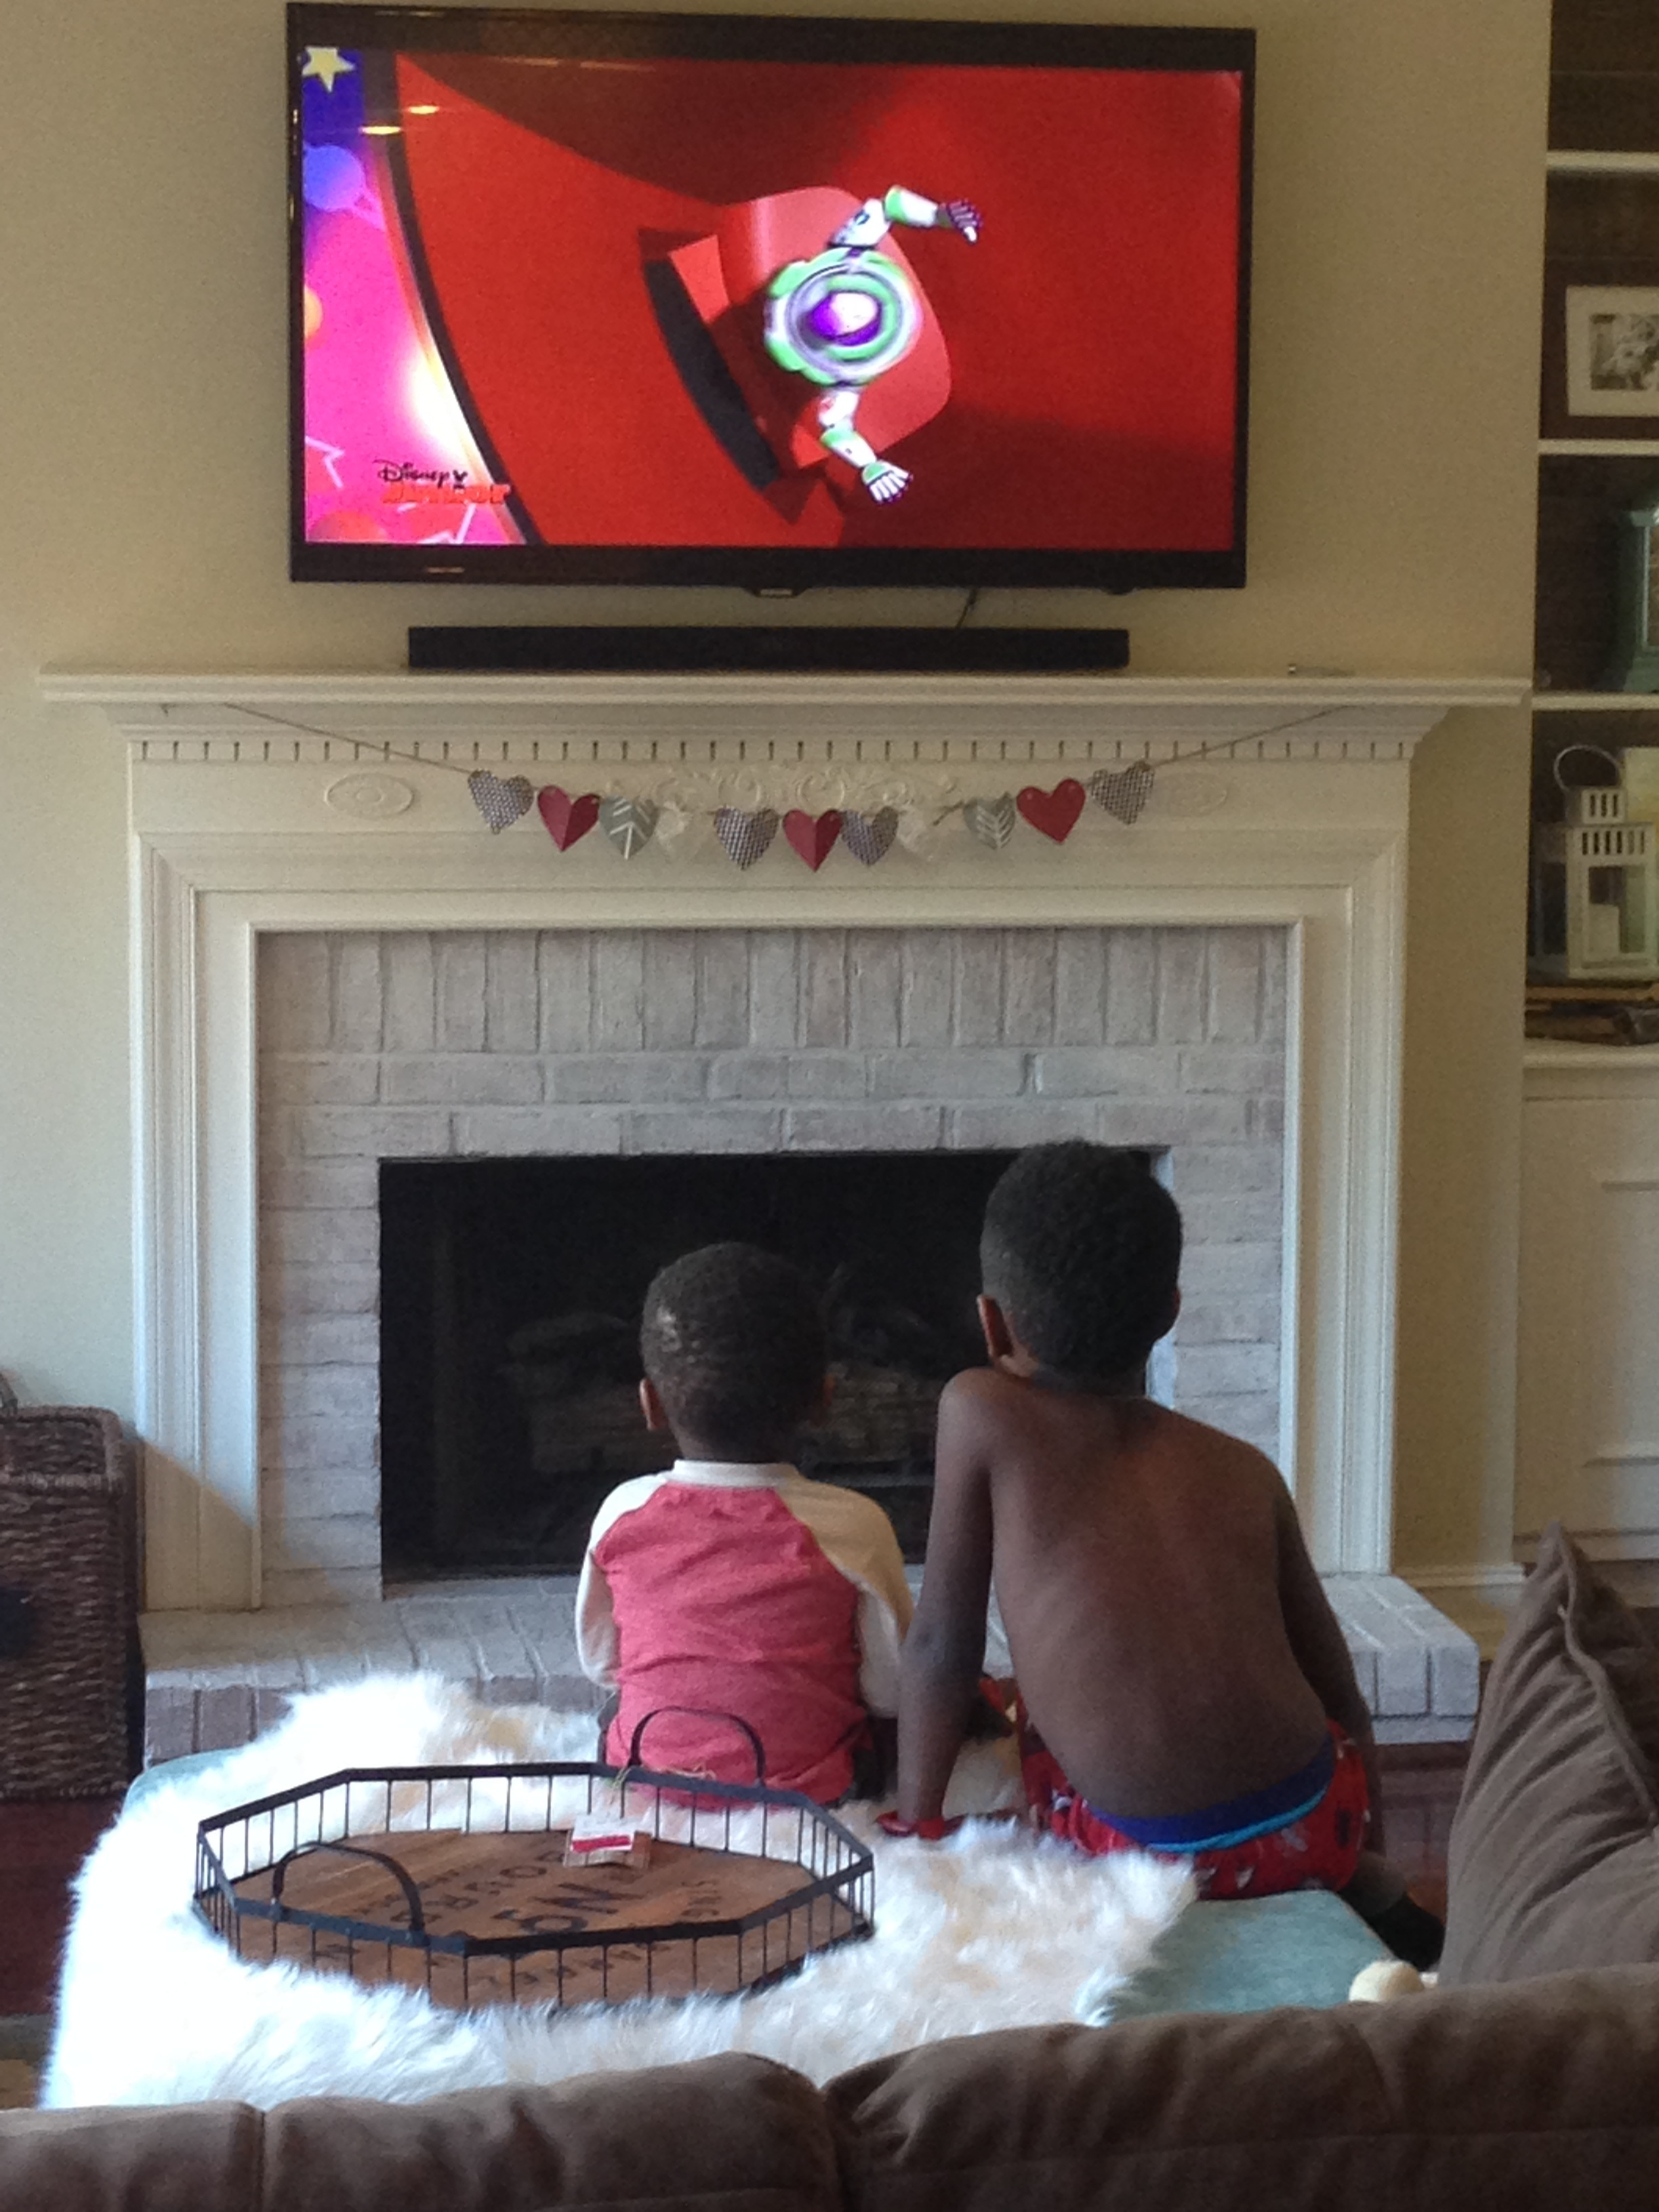 They decided this was the perfect spot to watch Toy Story...and you can see my discount price tag still on the tray : )